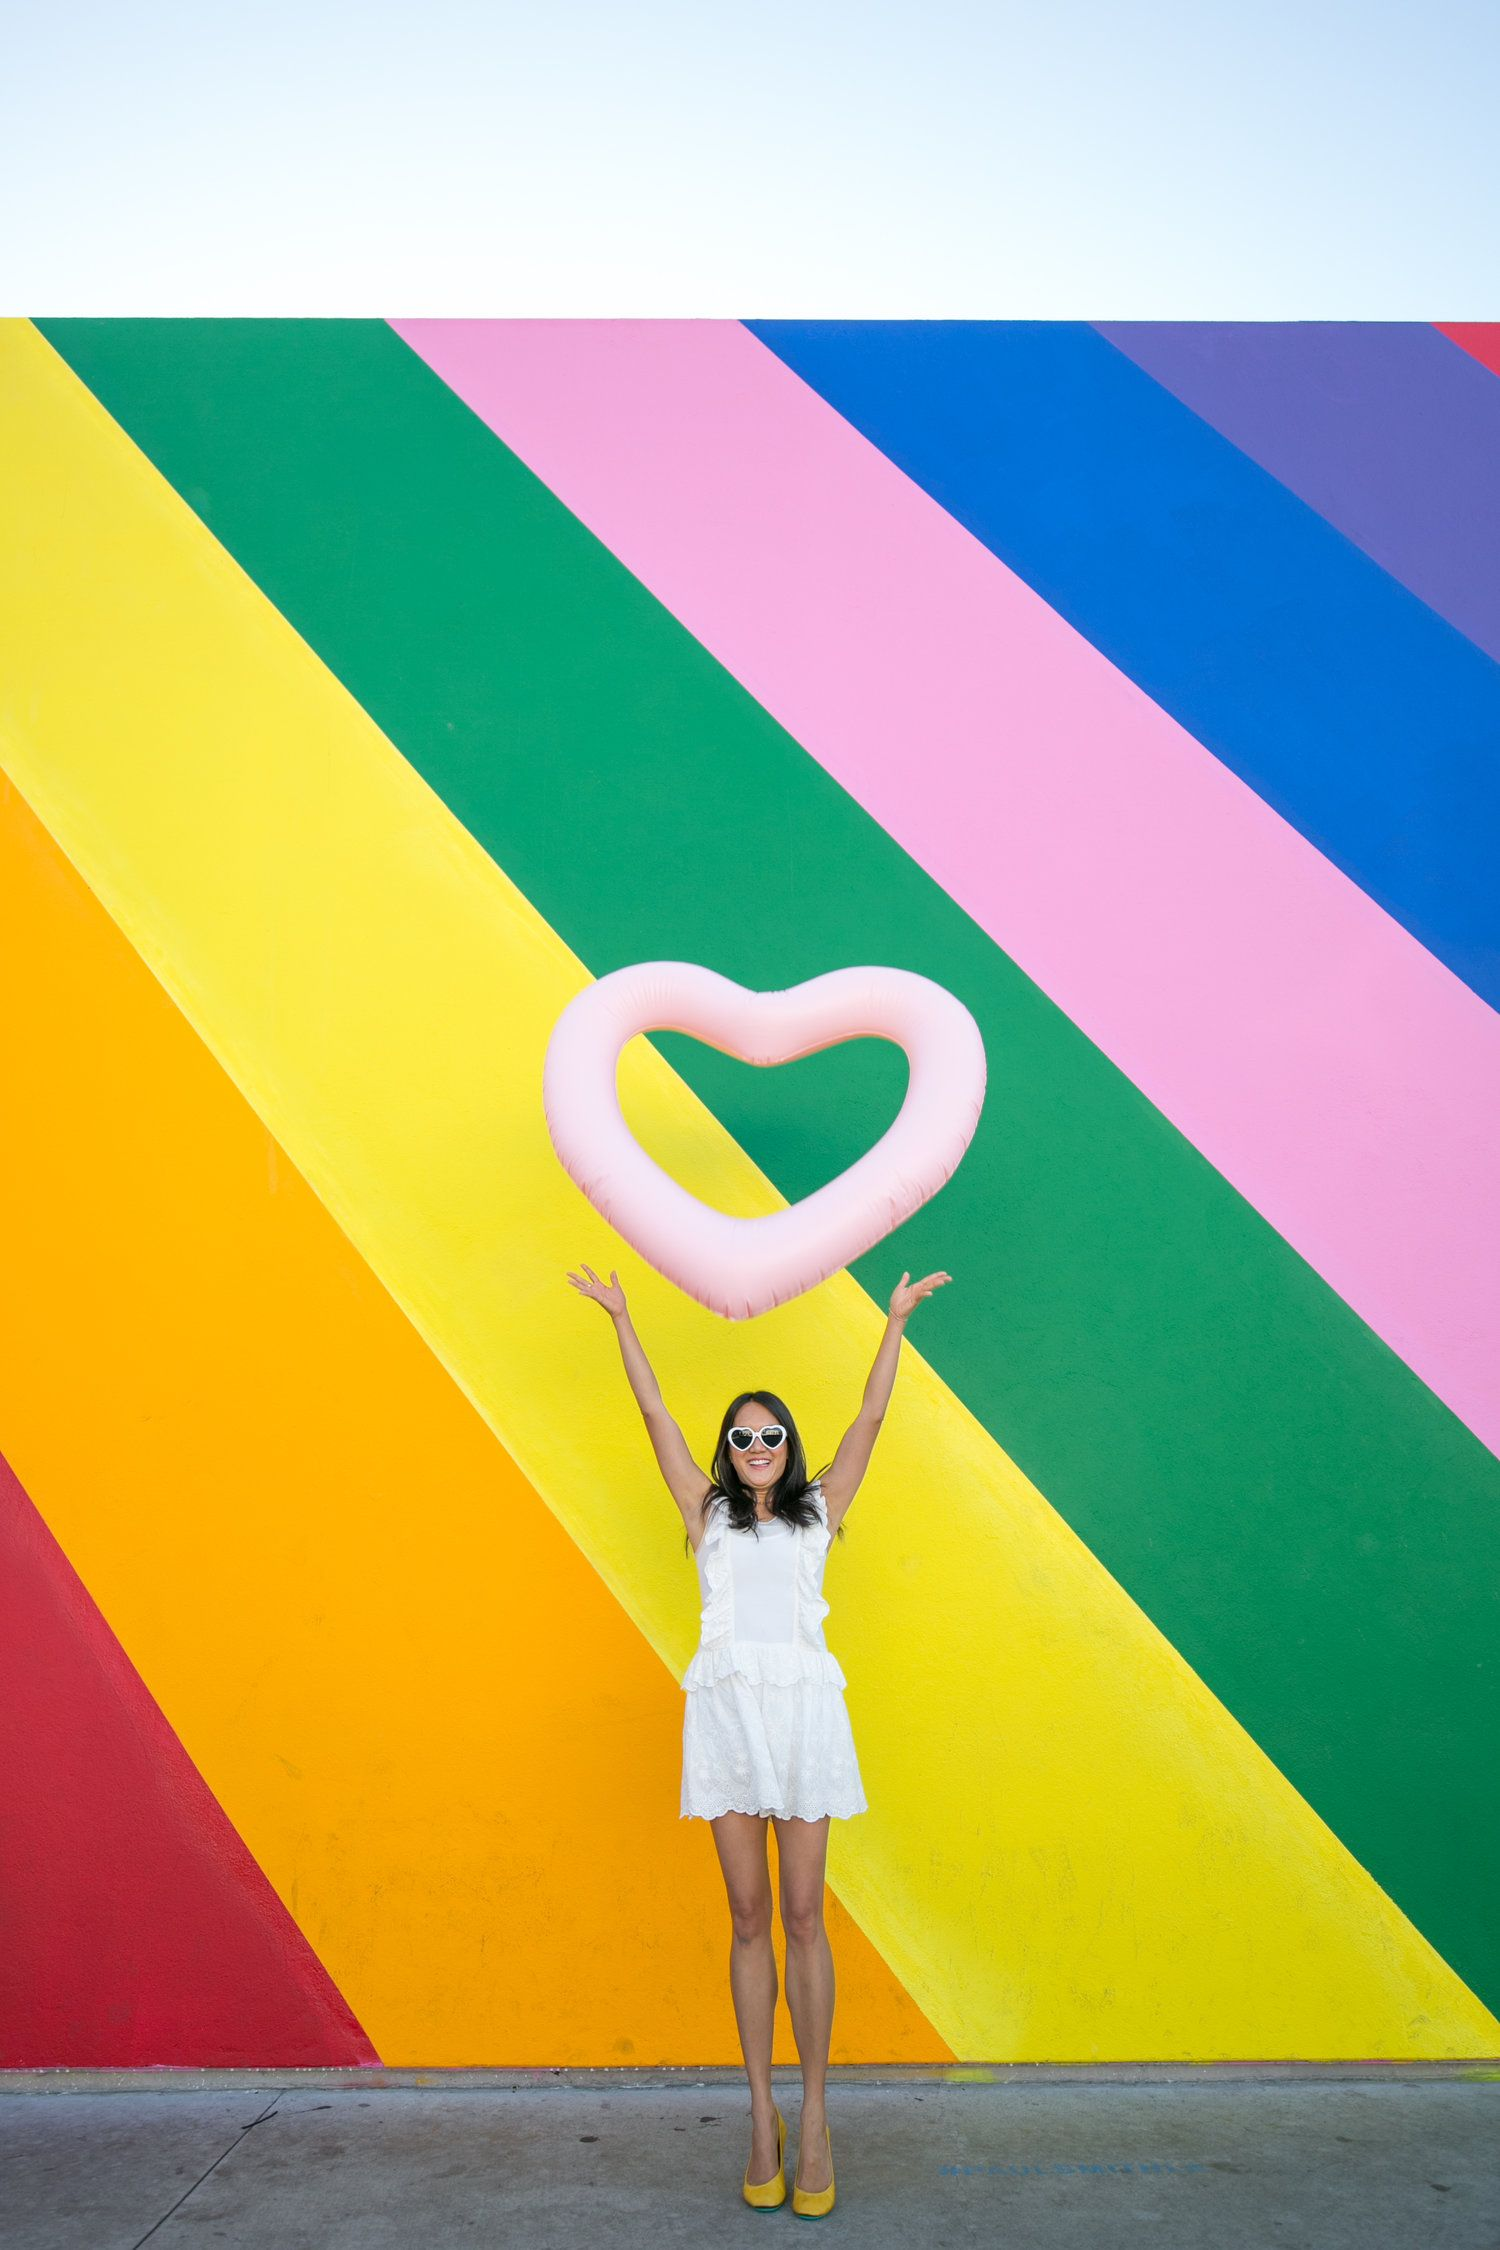 Photoshoot at the los angeles rainbow wall with amy tangerine